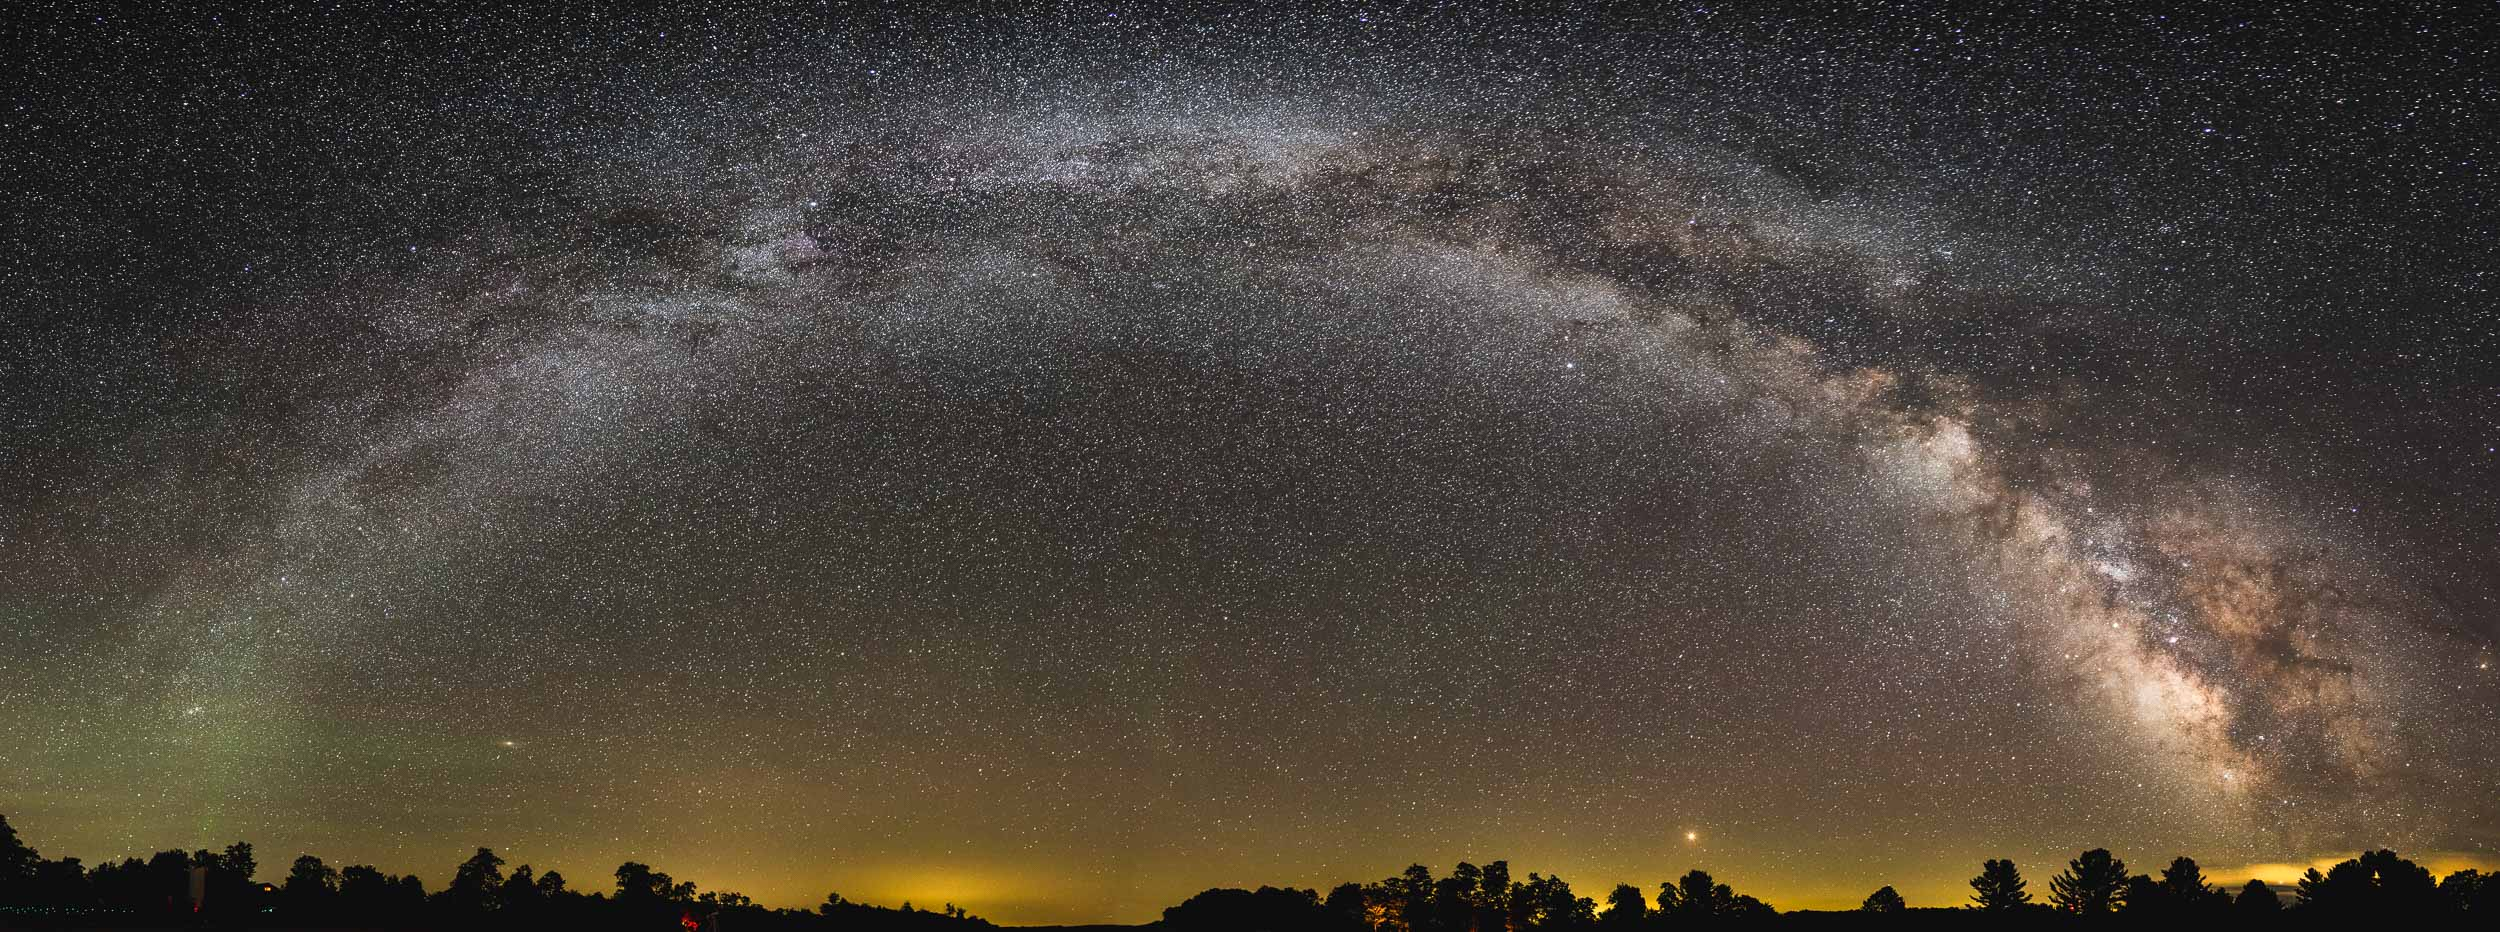 The full arch of the Milky Way at Cherry Springs State Park in Pennsylvania. On a clear night, more than 30,000 stars are easily visible here.